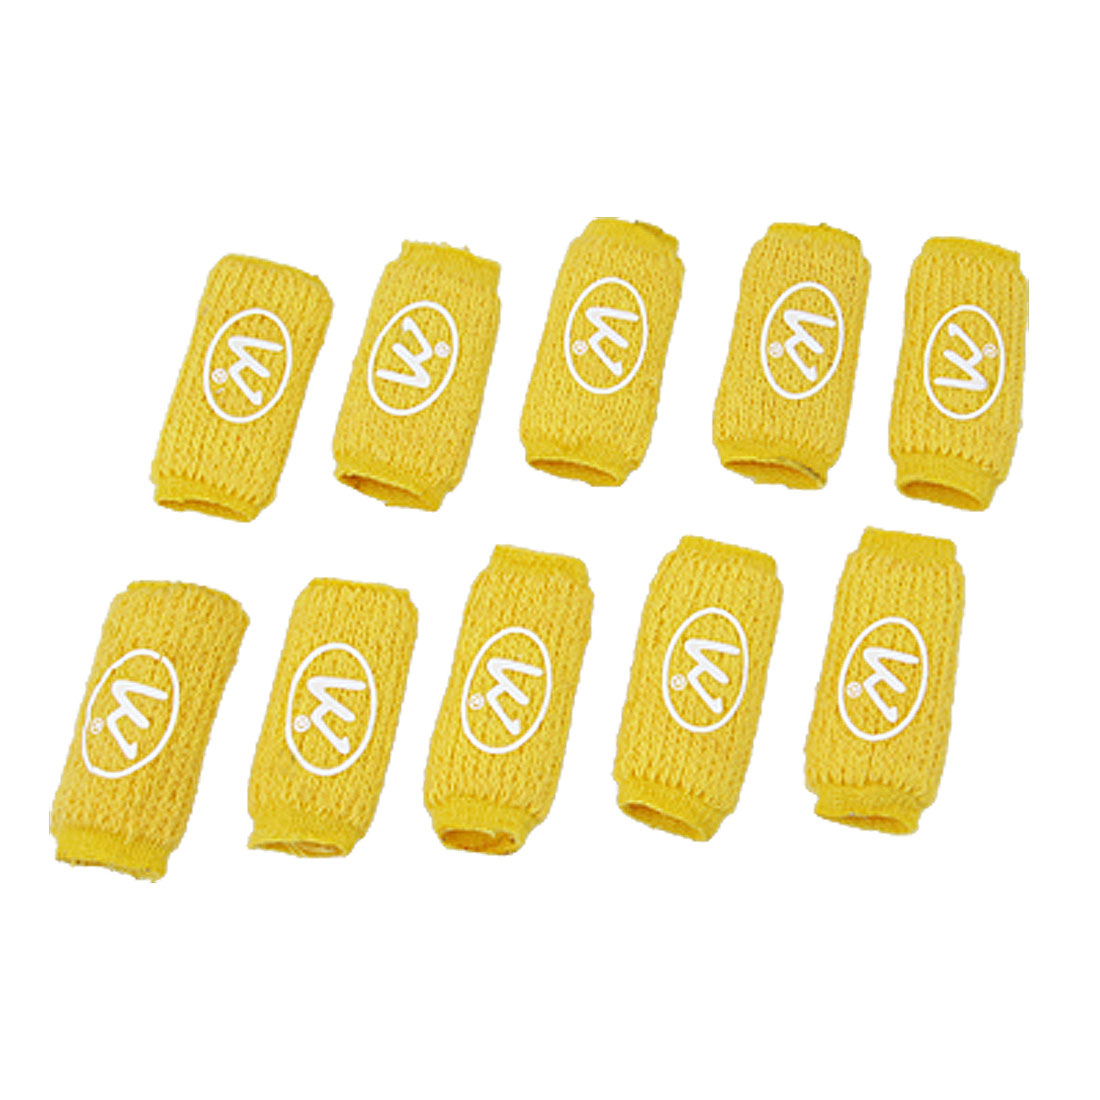 Basketball Badminton Elastic Finger Sleeve Yellow 10 Pcs